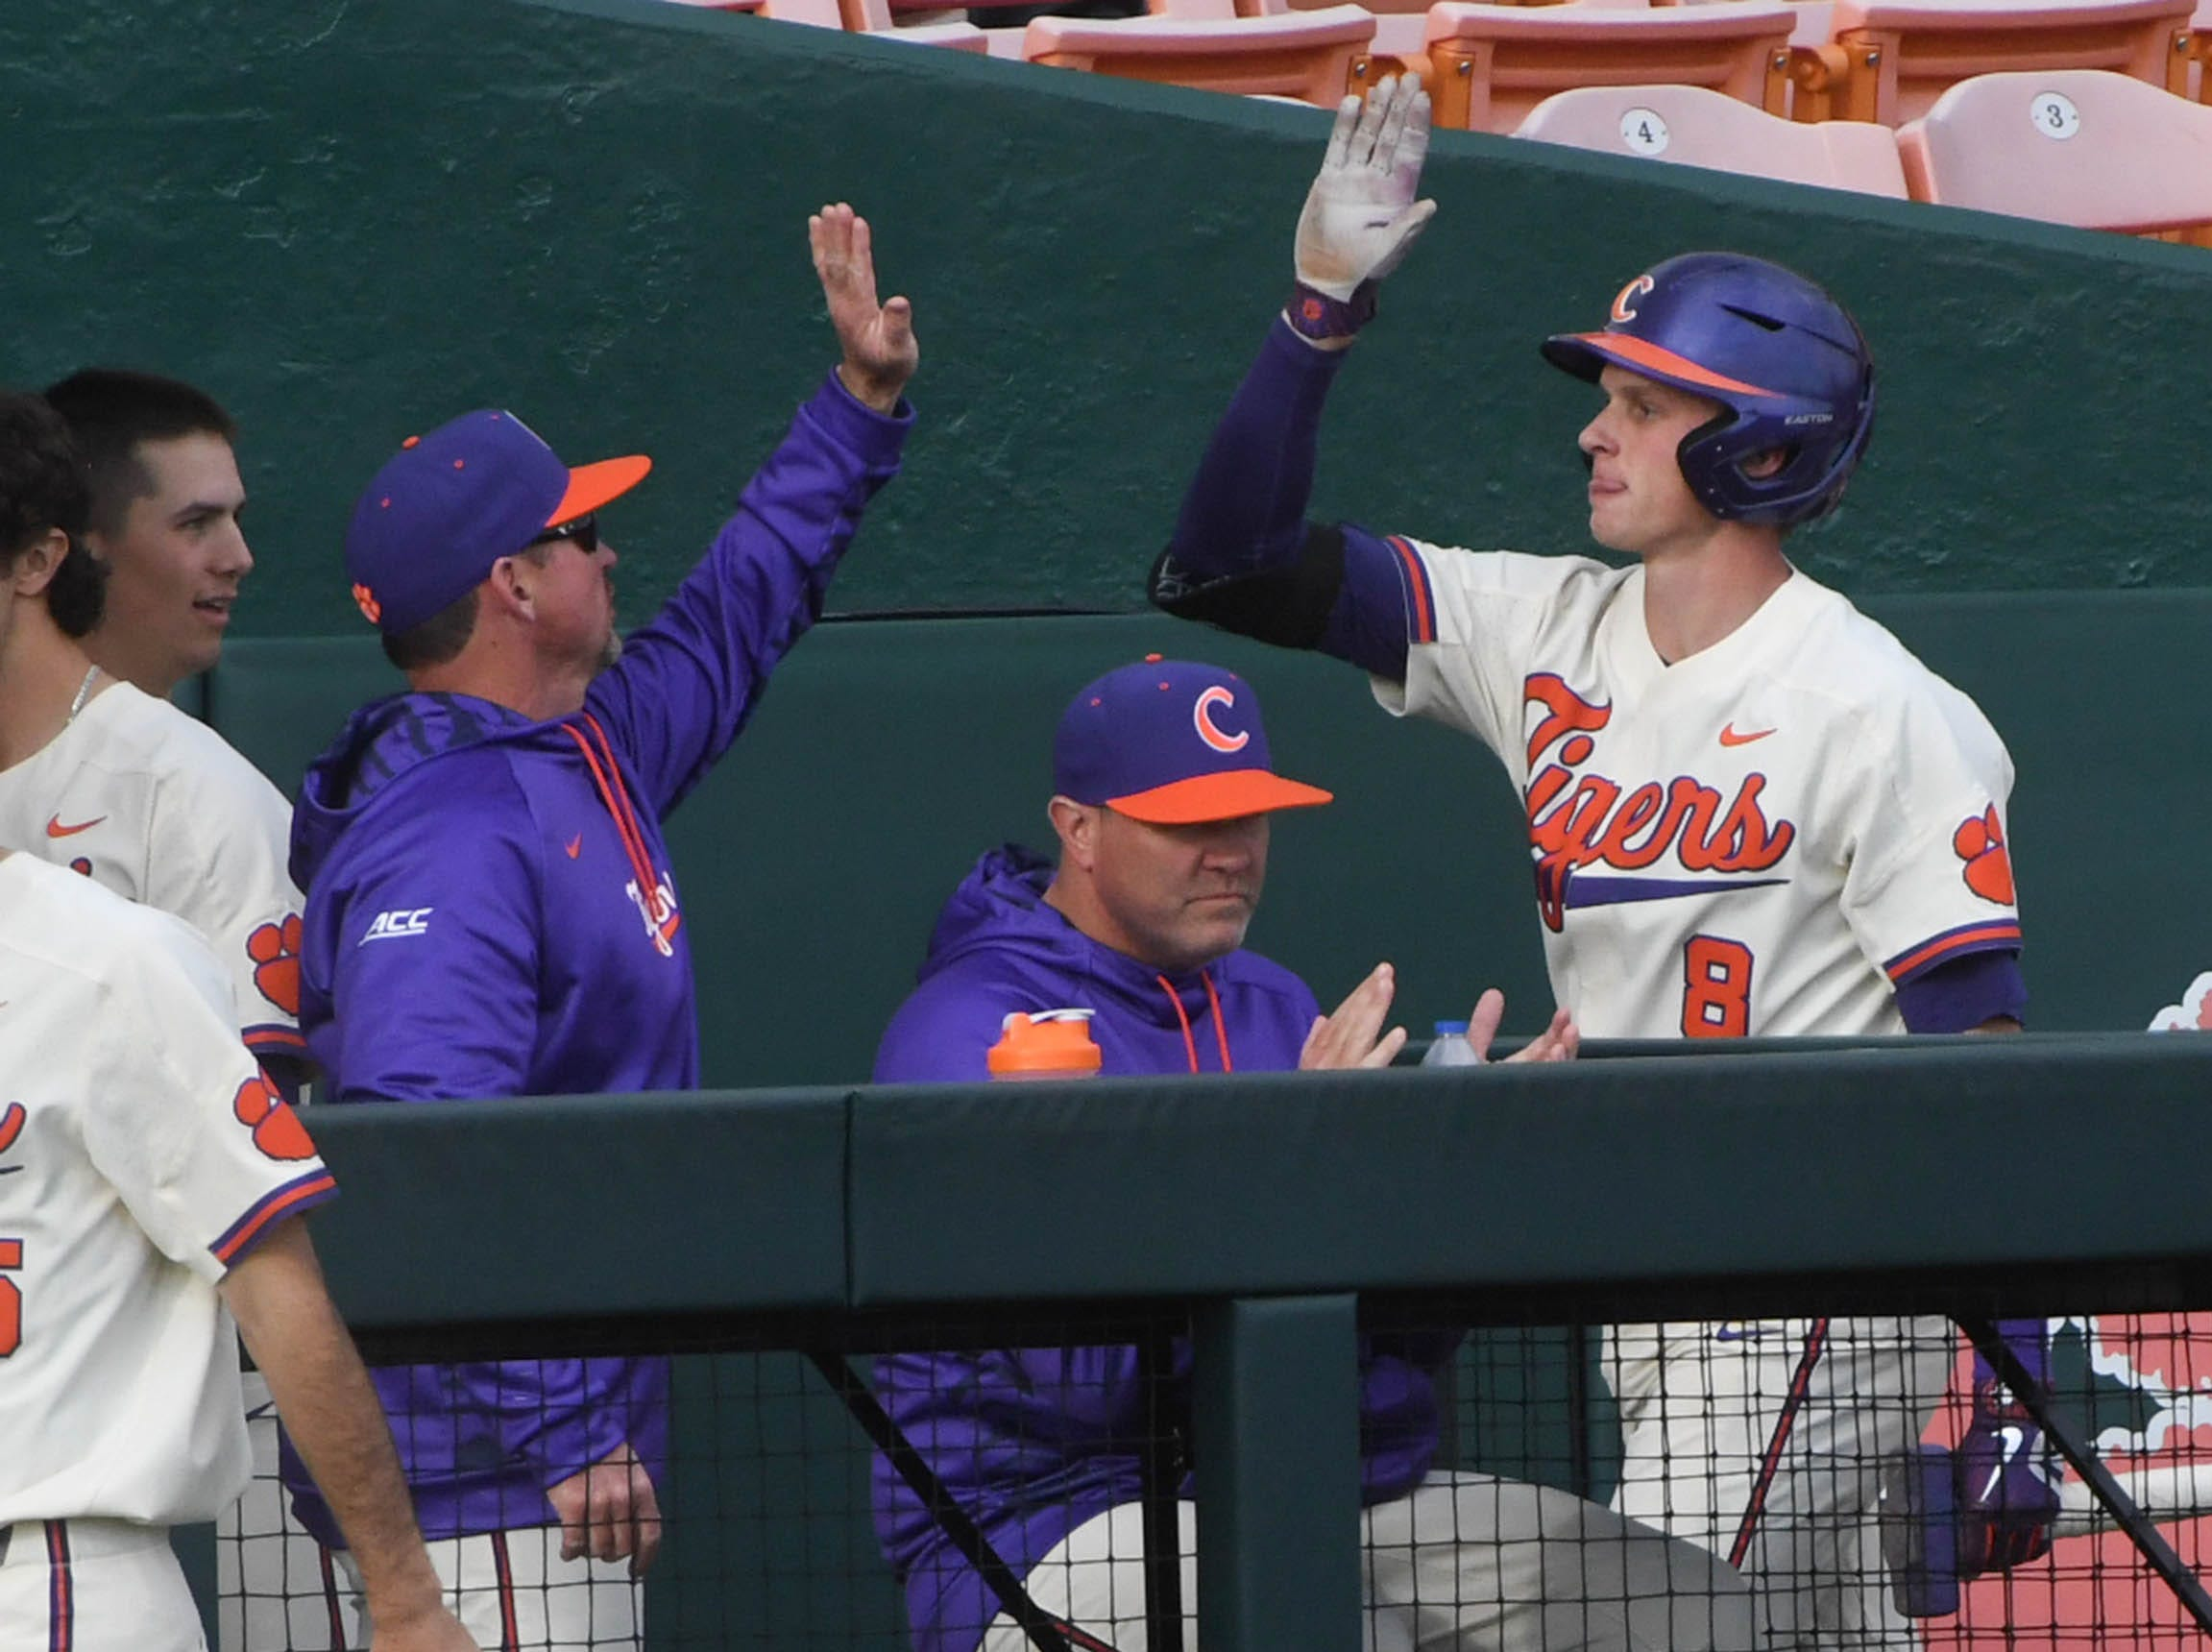 Clemson junior Logan Davidson(8) gets a high-five from Clemson head coach Monte Lee, left, after he hit a home run against Charlotte during the bottom of the first inning at Doug Kingsmore Stadium in Clemson Monday, February 18, 2019.